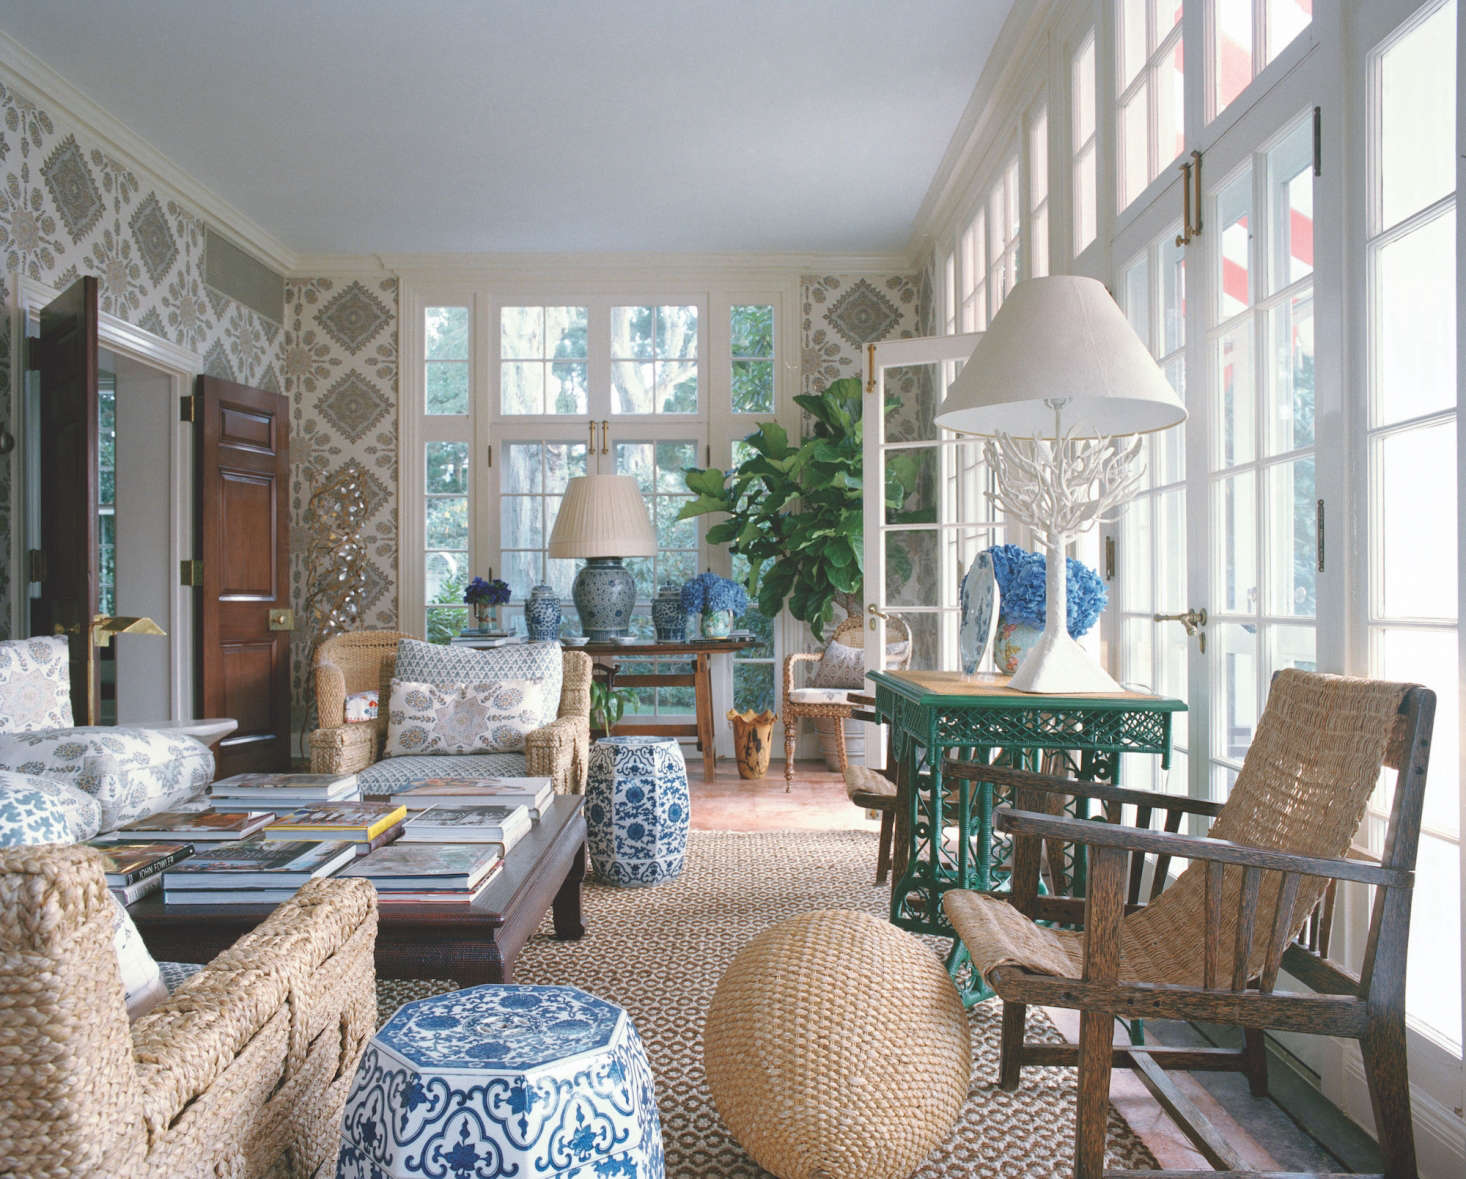 More Is More Seems To Be The Mantra For Designer Tory Burch, At Home On